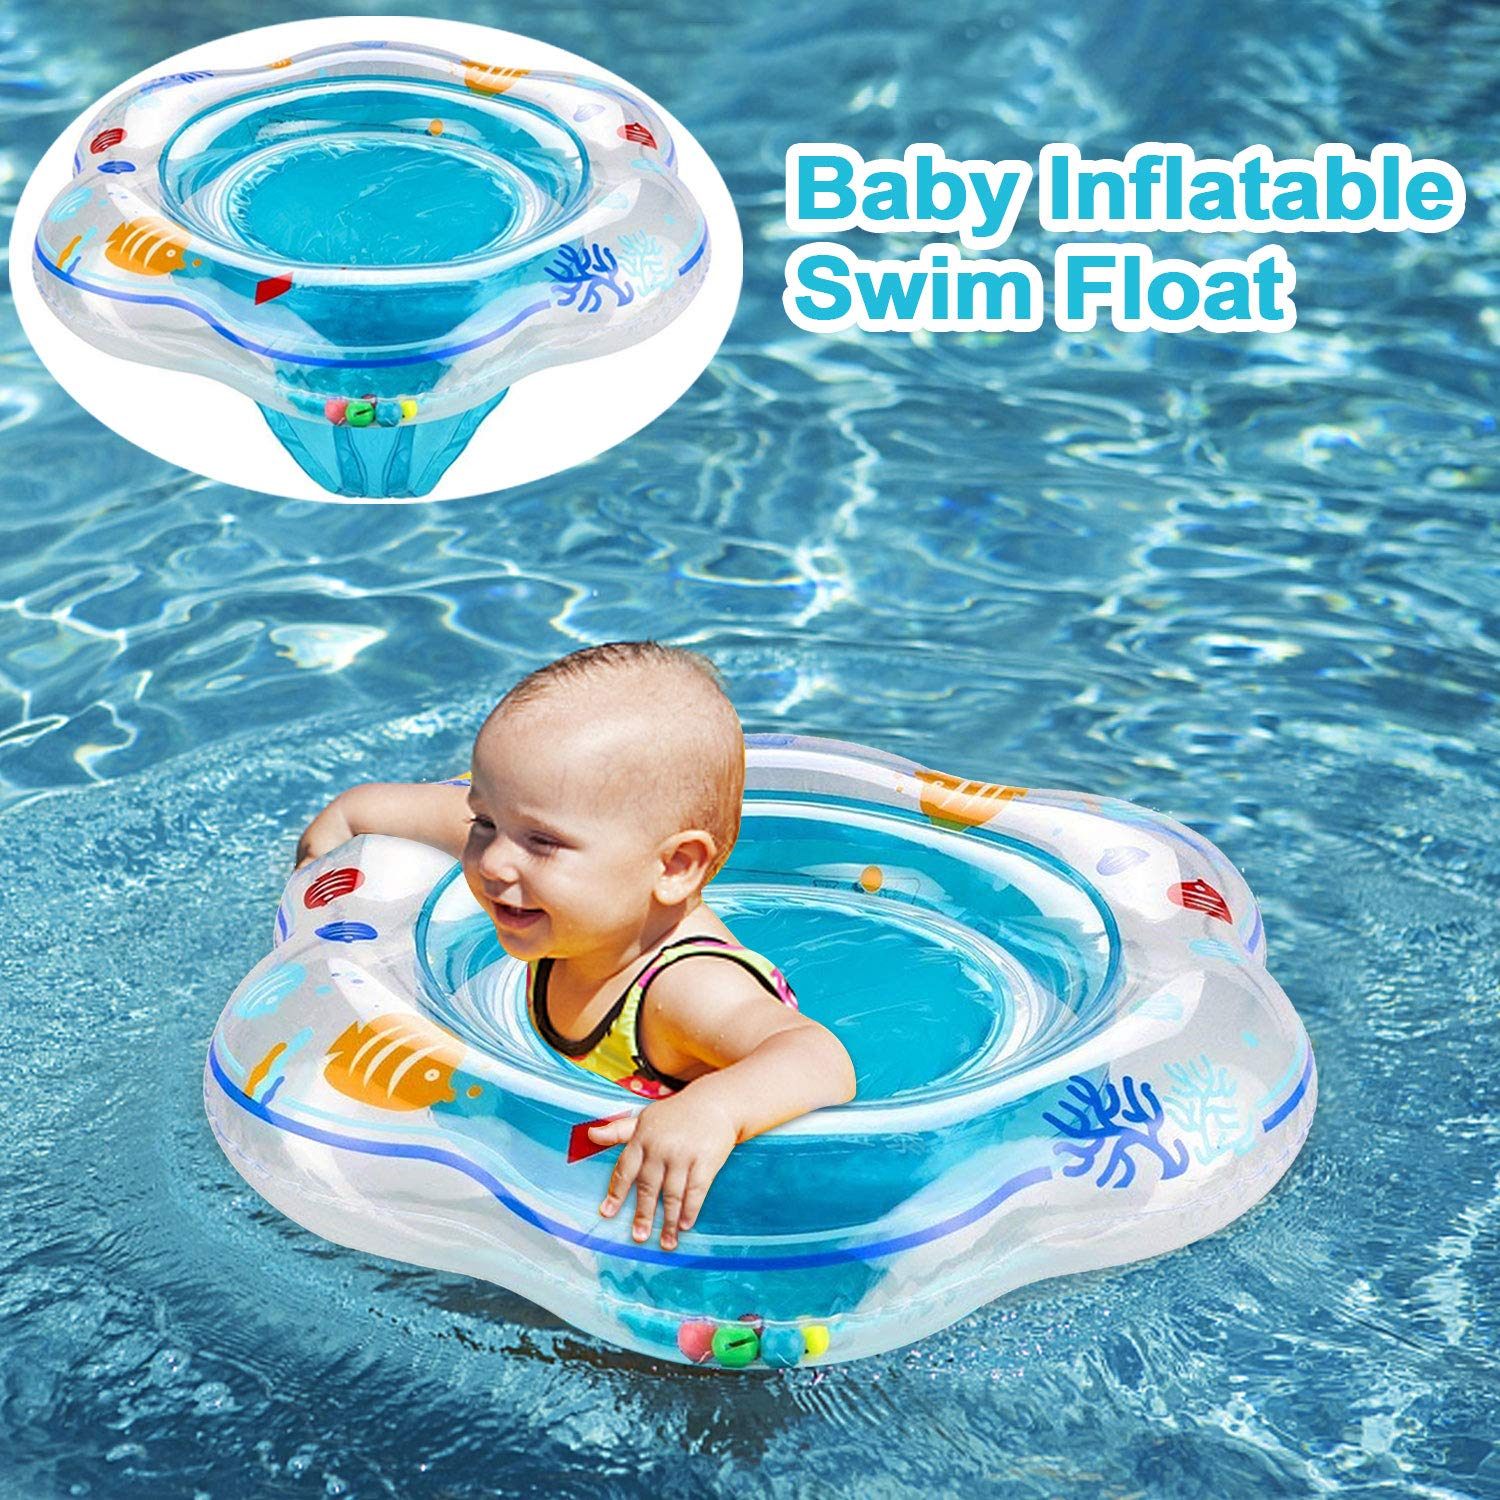 e5348979fd COWEAL Baby Swimming Float, Inflatable Swim Ring for Infant Kids Toddler  Boys Girls Baby Summer Pool Float Seat Boats Outdoor Indoor Water Bath Toys  Beach ...